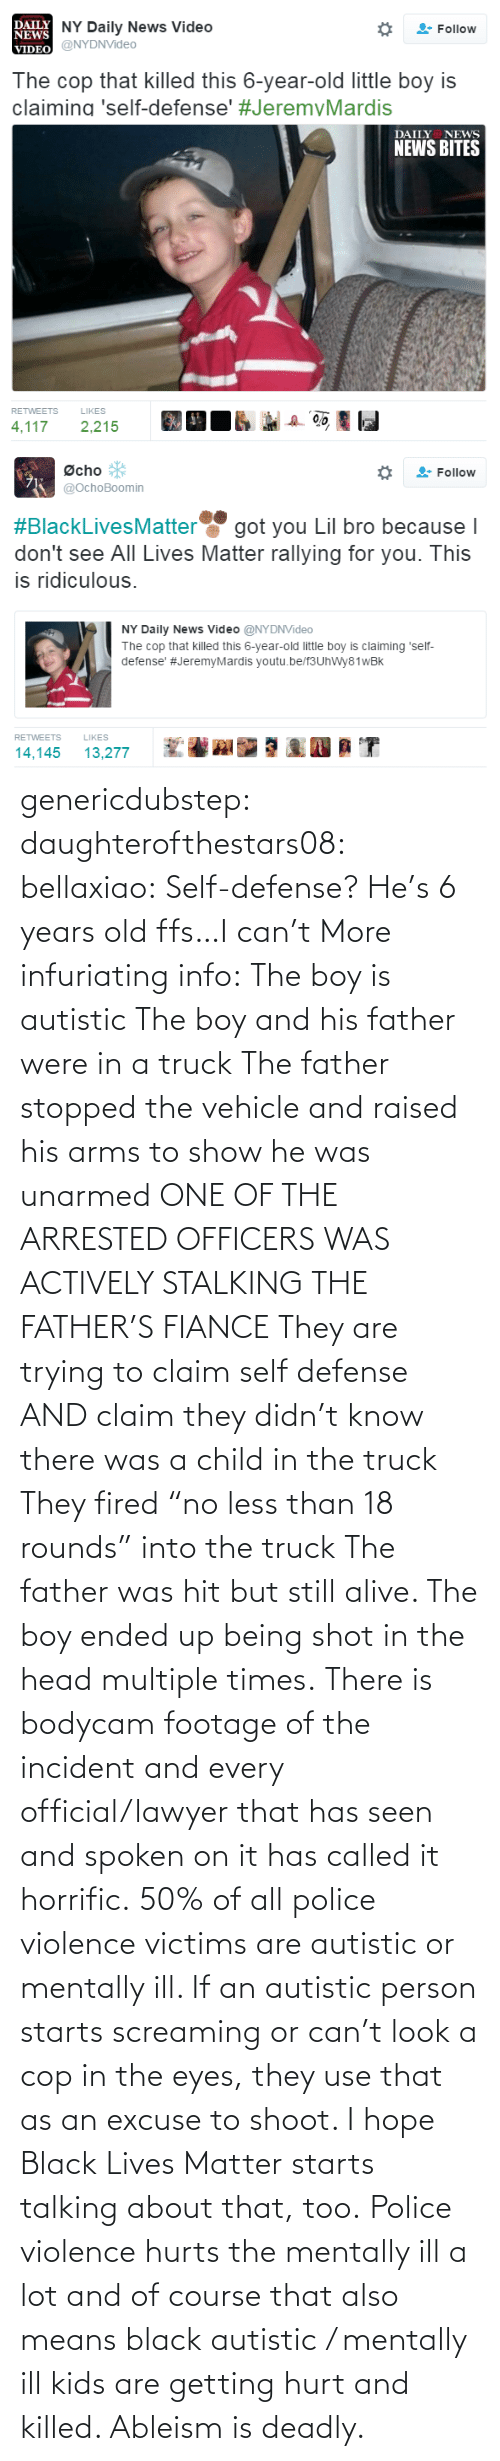 "Official: genericdubstep: daughterofthestars08:  bellaxiao:  Self-defense? He's 6 years old ffs…I can't  More infuriating info: The boy is autistic The boy and his father were in a truck The father stopped the vehicle and raised his arms to show he was unarmed ONE OF THE ARRESTED OFFICERS WAS ACTIVELY STALKING THE FATHER'S FIANCE They are trying to claim self defense AND claim they didn't know there was a child in the truck They fired ""no less than 18 rounds"" into the truck The father was hit but still alive. The boy ended up being shot in the head multiple times. There is bodycam footage of the incident and every official/lawyer that has seen and spoken on it has called it horrific.  50% of all police violence victims are autistic or mentally ill. If an autistic person starts screaming or can't look a cop in the eyes, they use that as an excuse to shoot. I hope Black Lives Matter starts talking about that, too. Police violence hurts the mentally ill a lot and of course that also means black autistic / mentally ill kids are getting hurt and killed. Ableism is deadly."